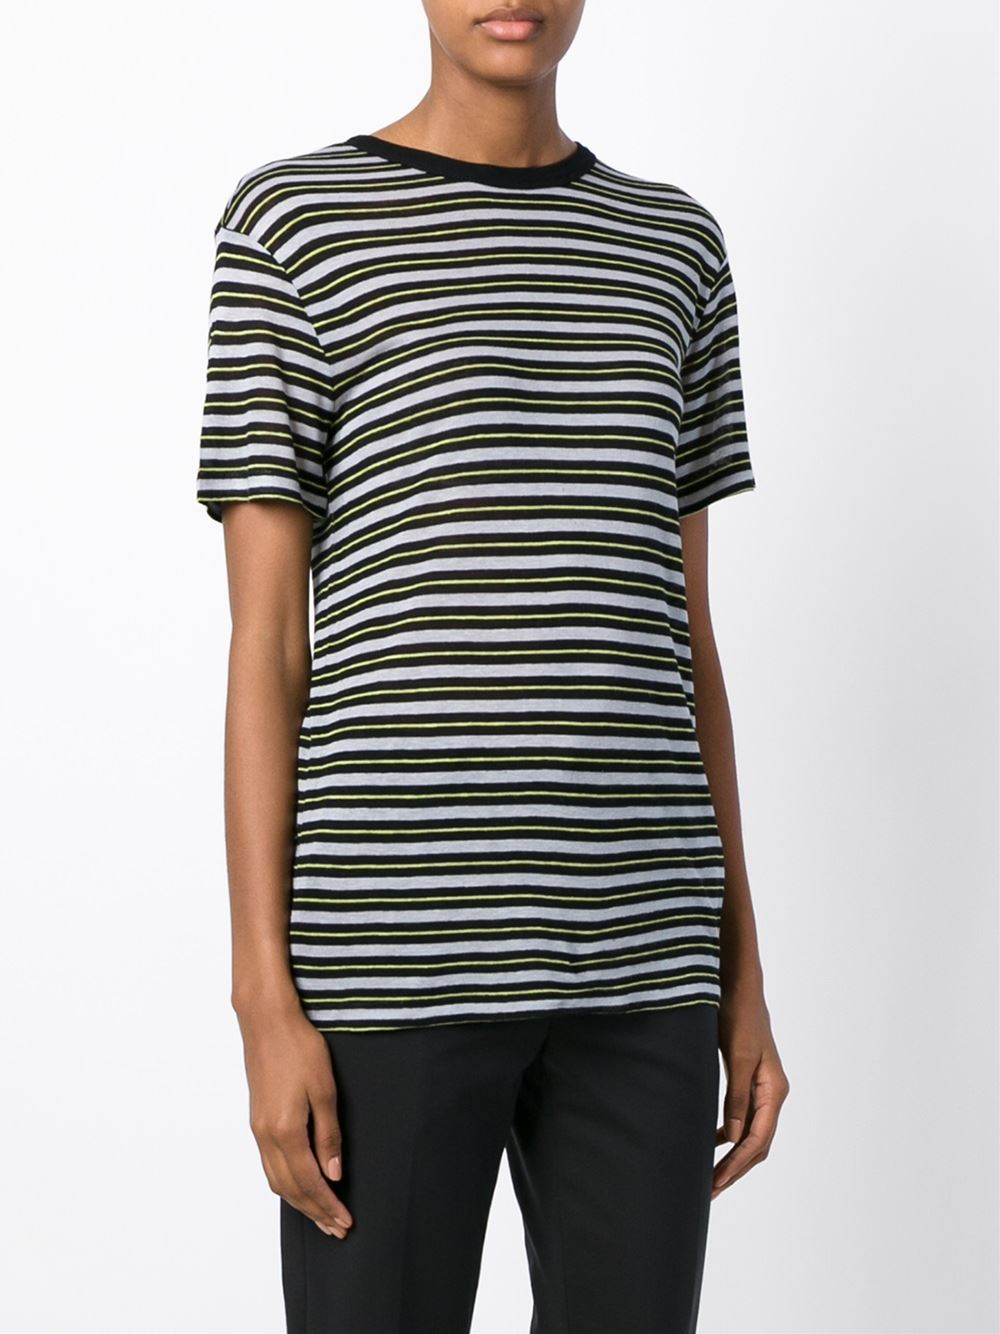 T by alexander wang striped t shirt in black lyst for Alexander wang t shirts